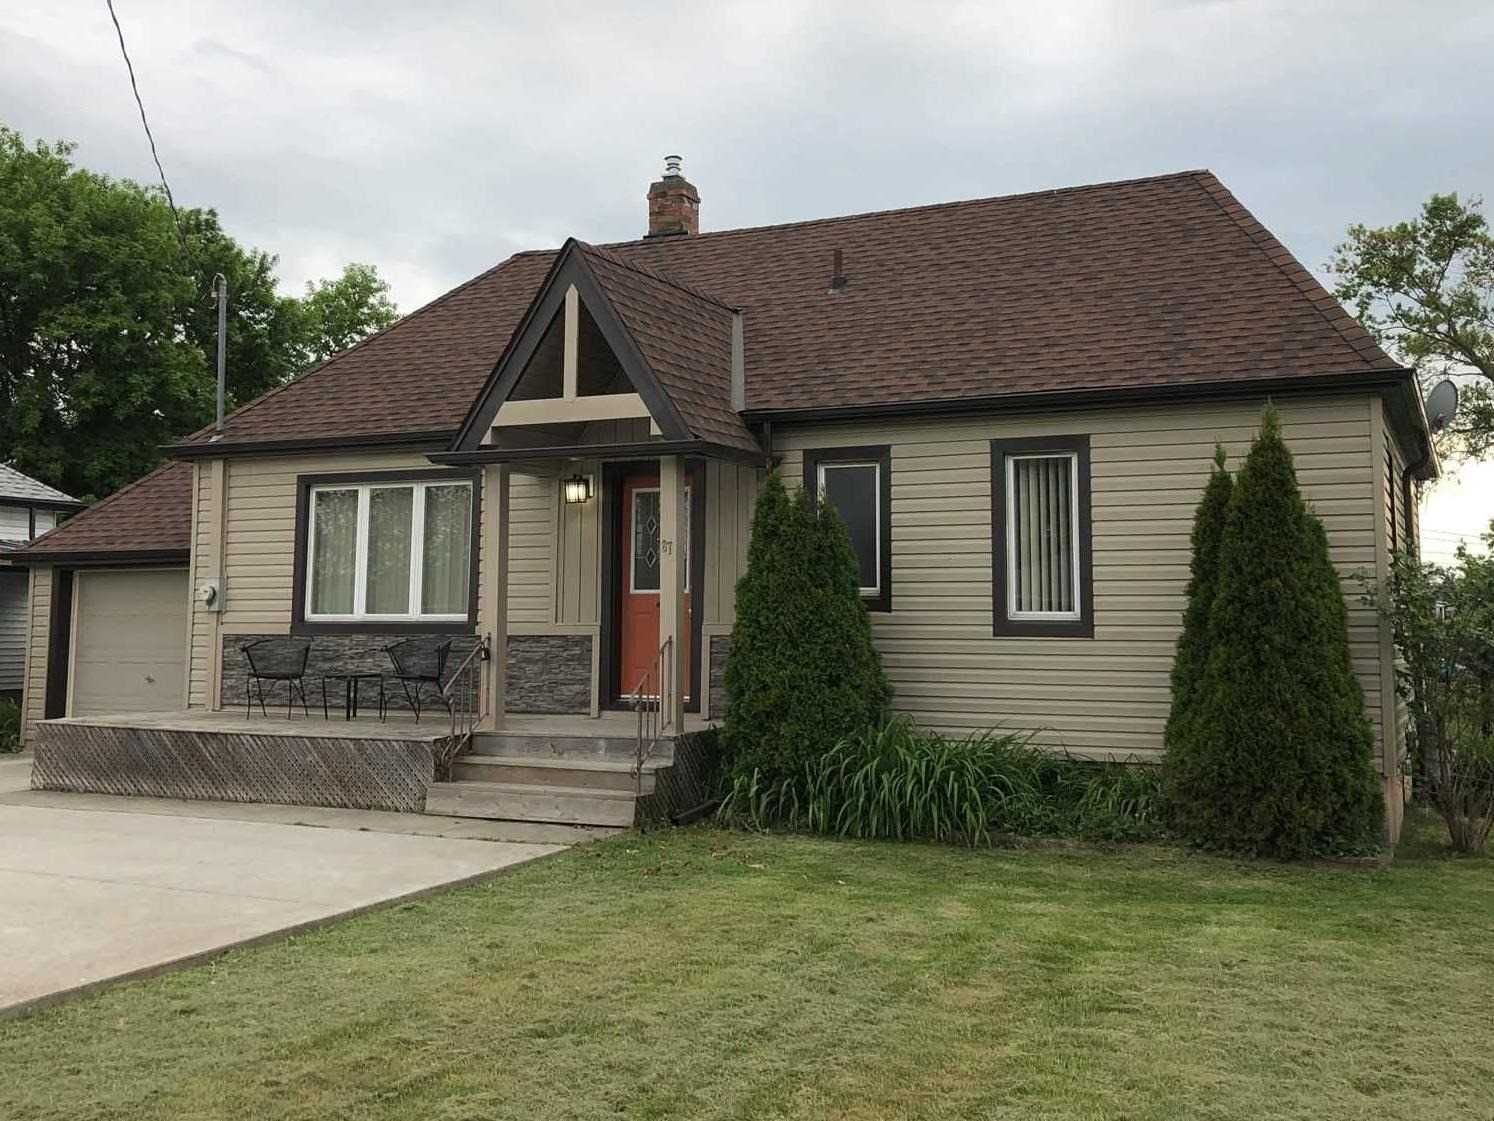 Main Photo: 87 Martindale Road in St. Catharines: House (Bungalow) for sale : MLS®# X5247513